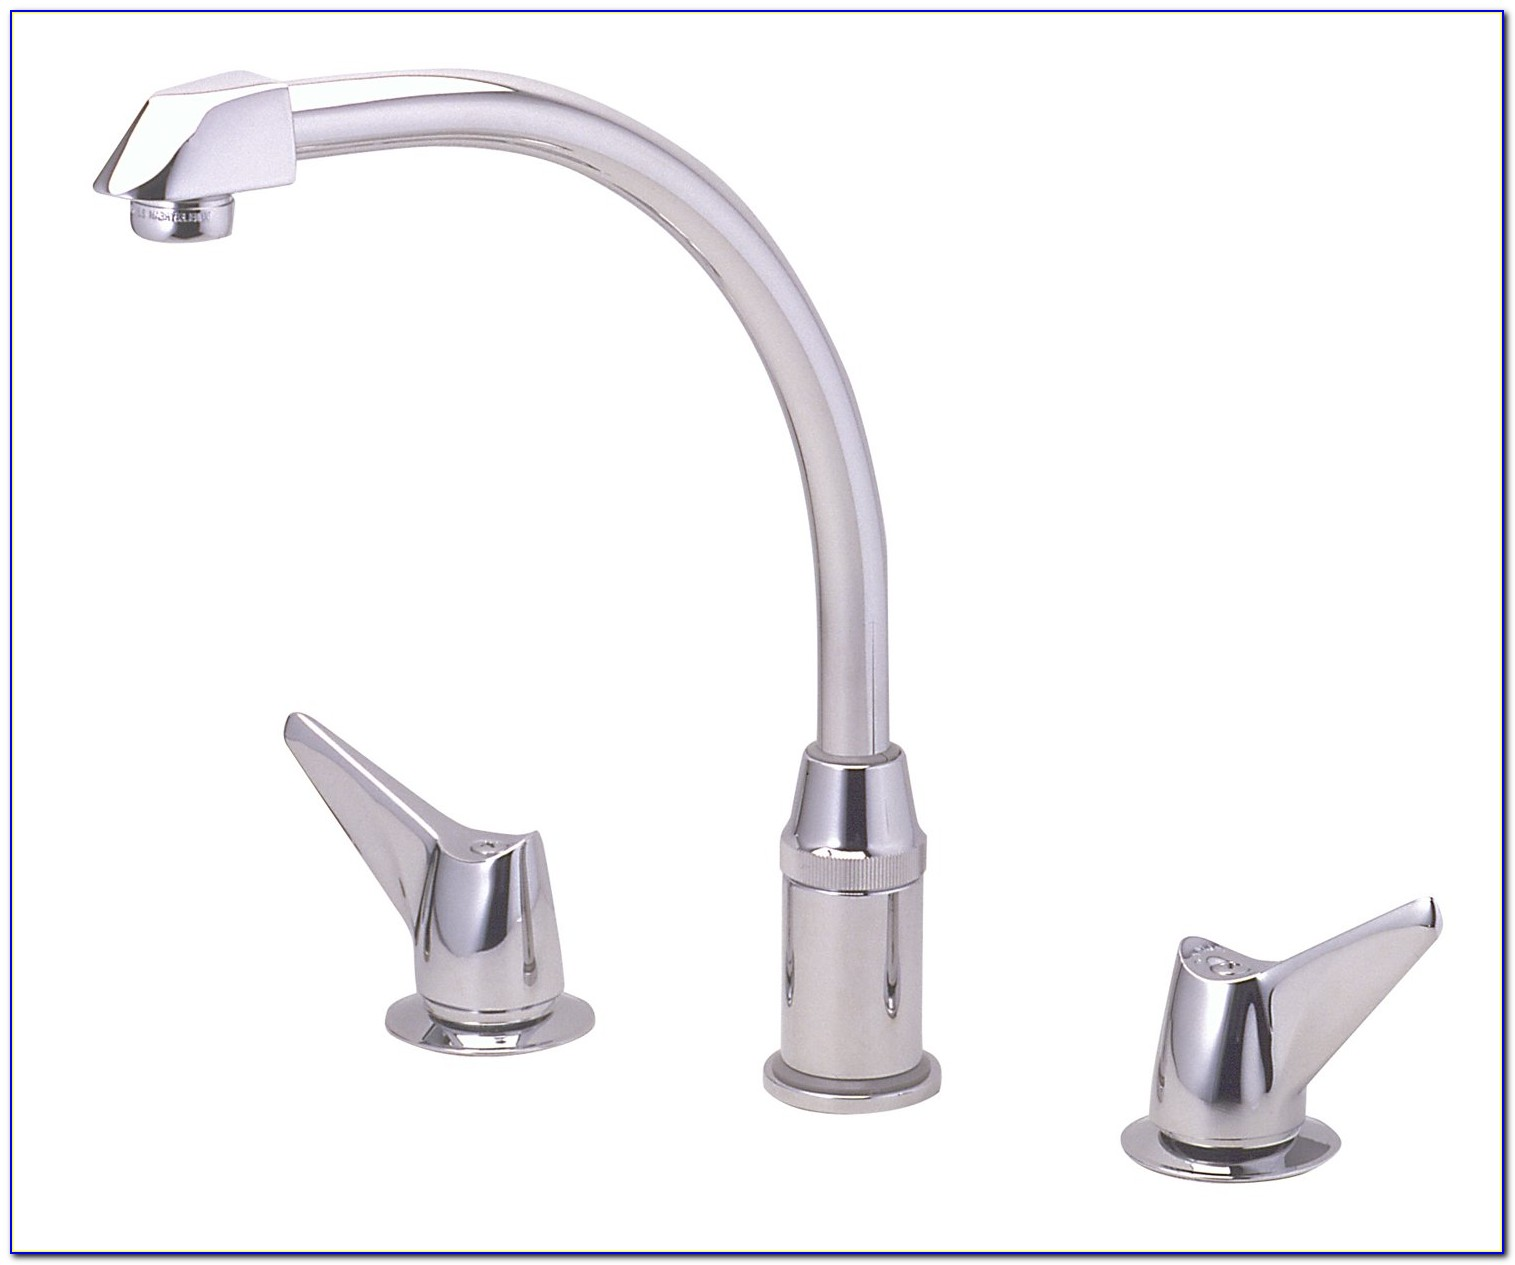 2 Handle Kitchen Faucet With Pull Down Sprayer